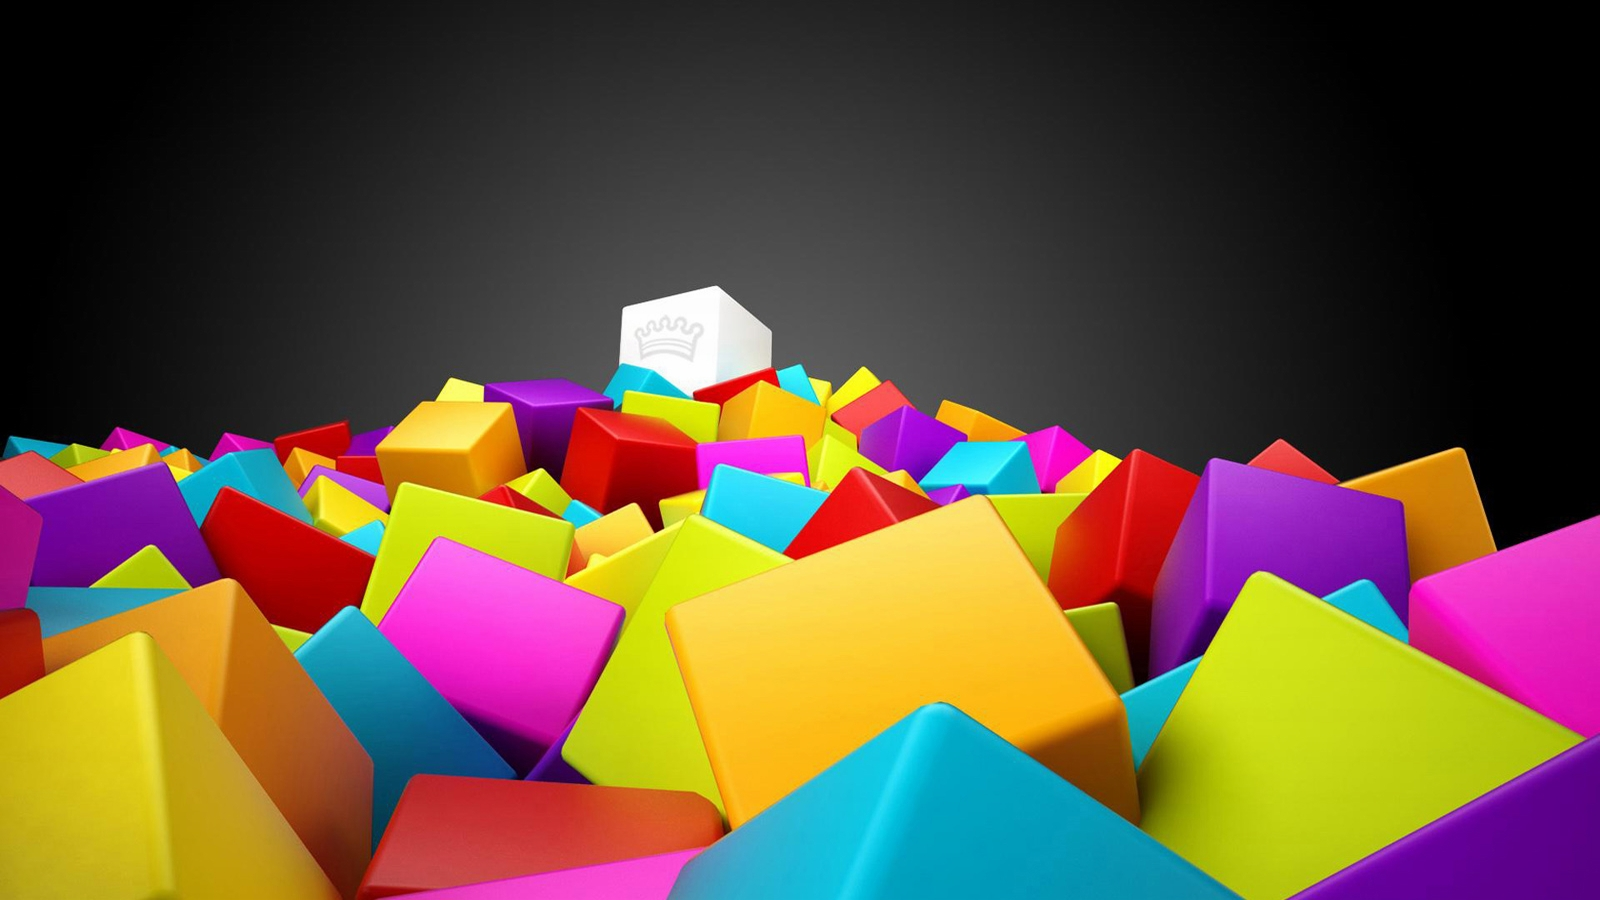 awesome 3d cubes and cube king hd wallpaper | hd wallpaper